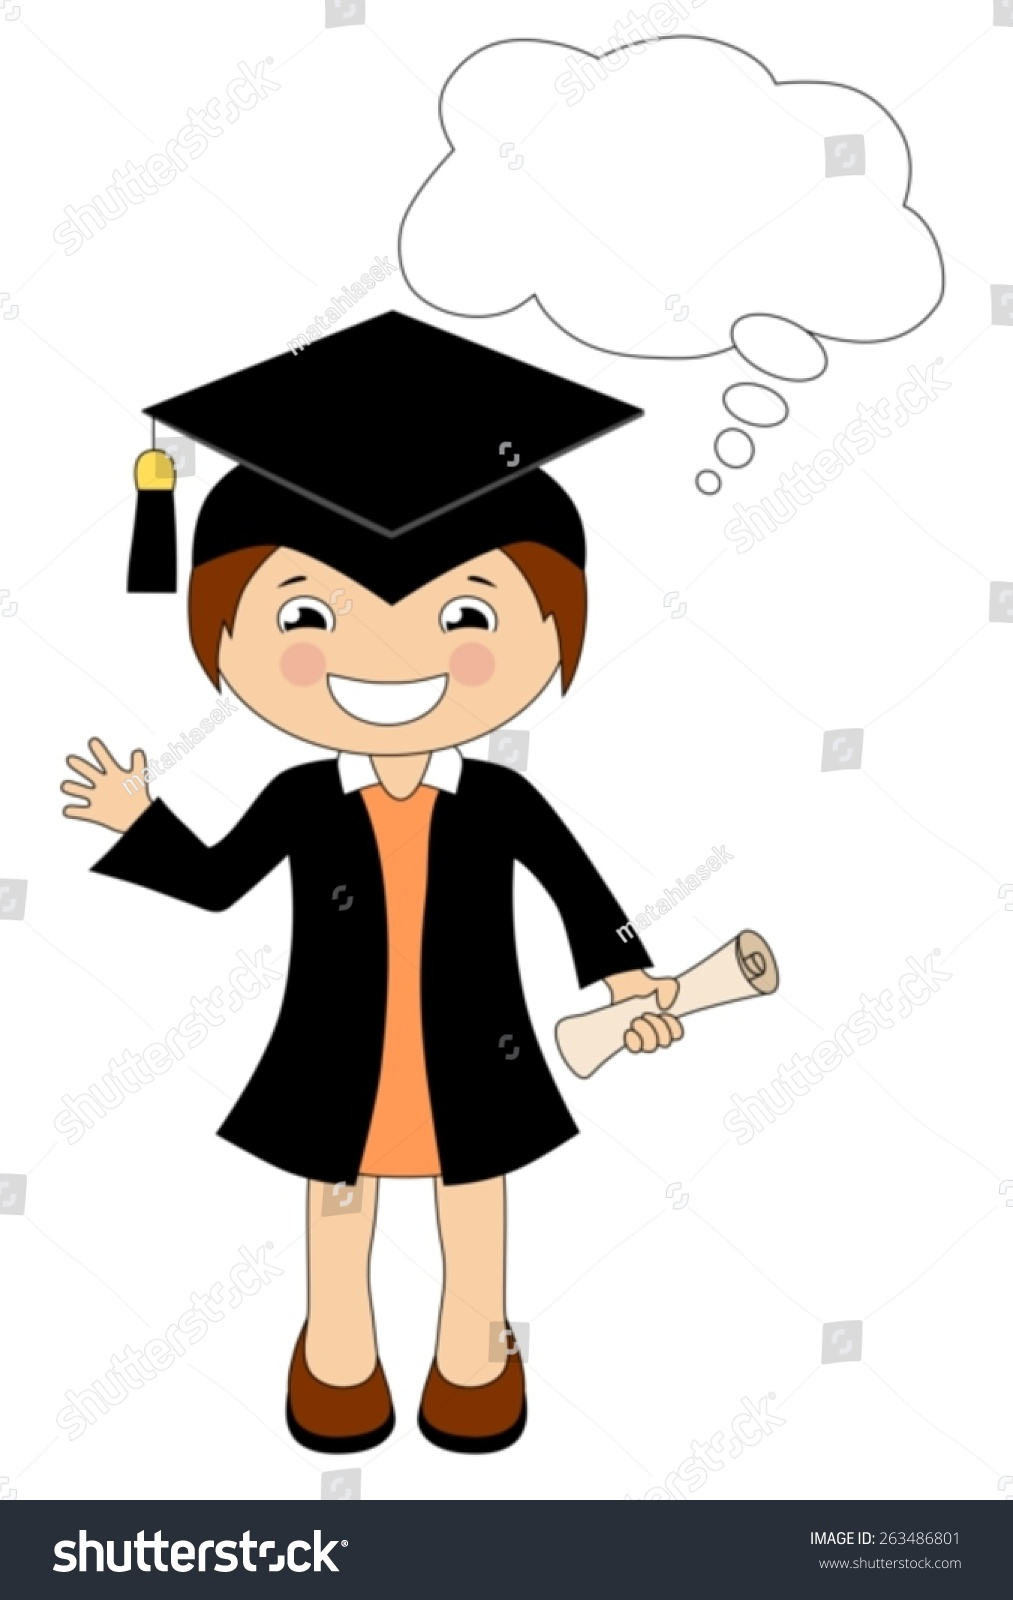 Cartoon Girl Cap Gown Graduate Speech Stock Vector 263486801 ...